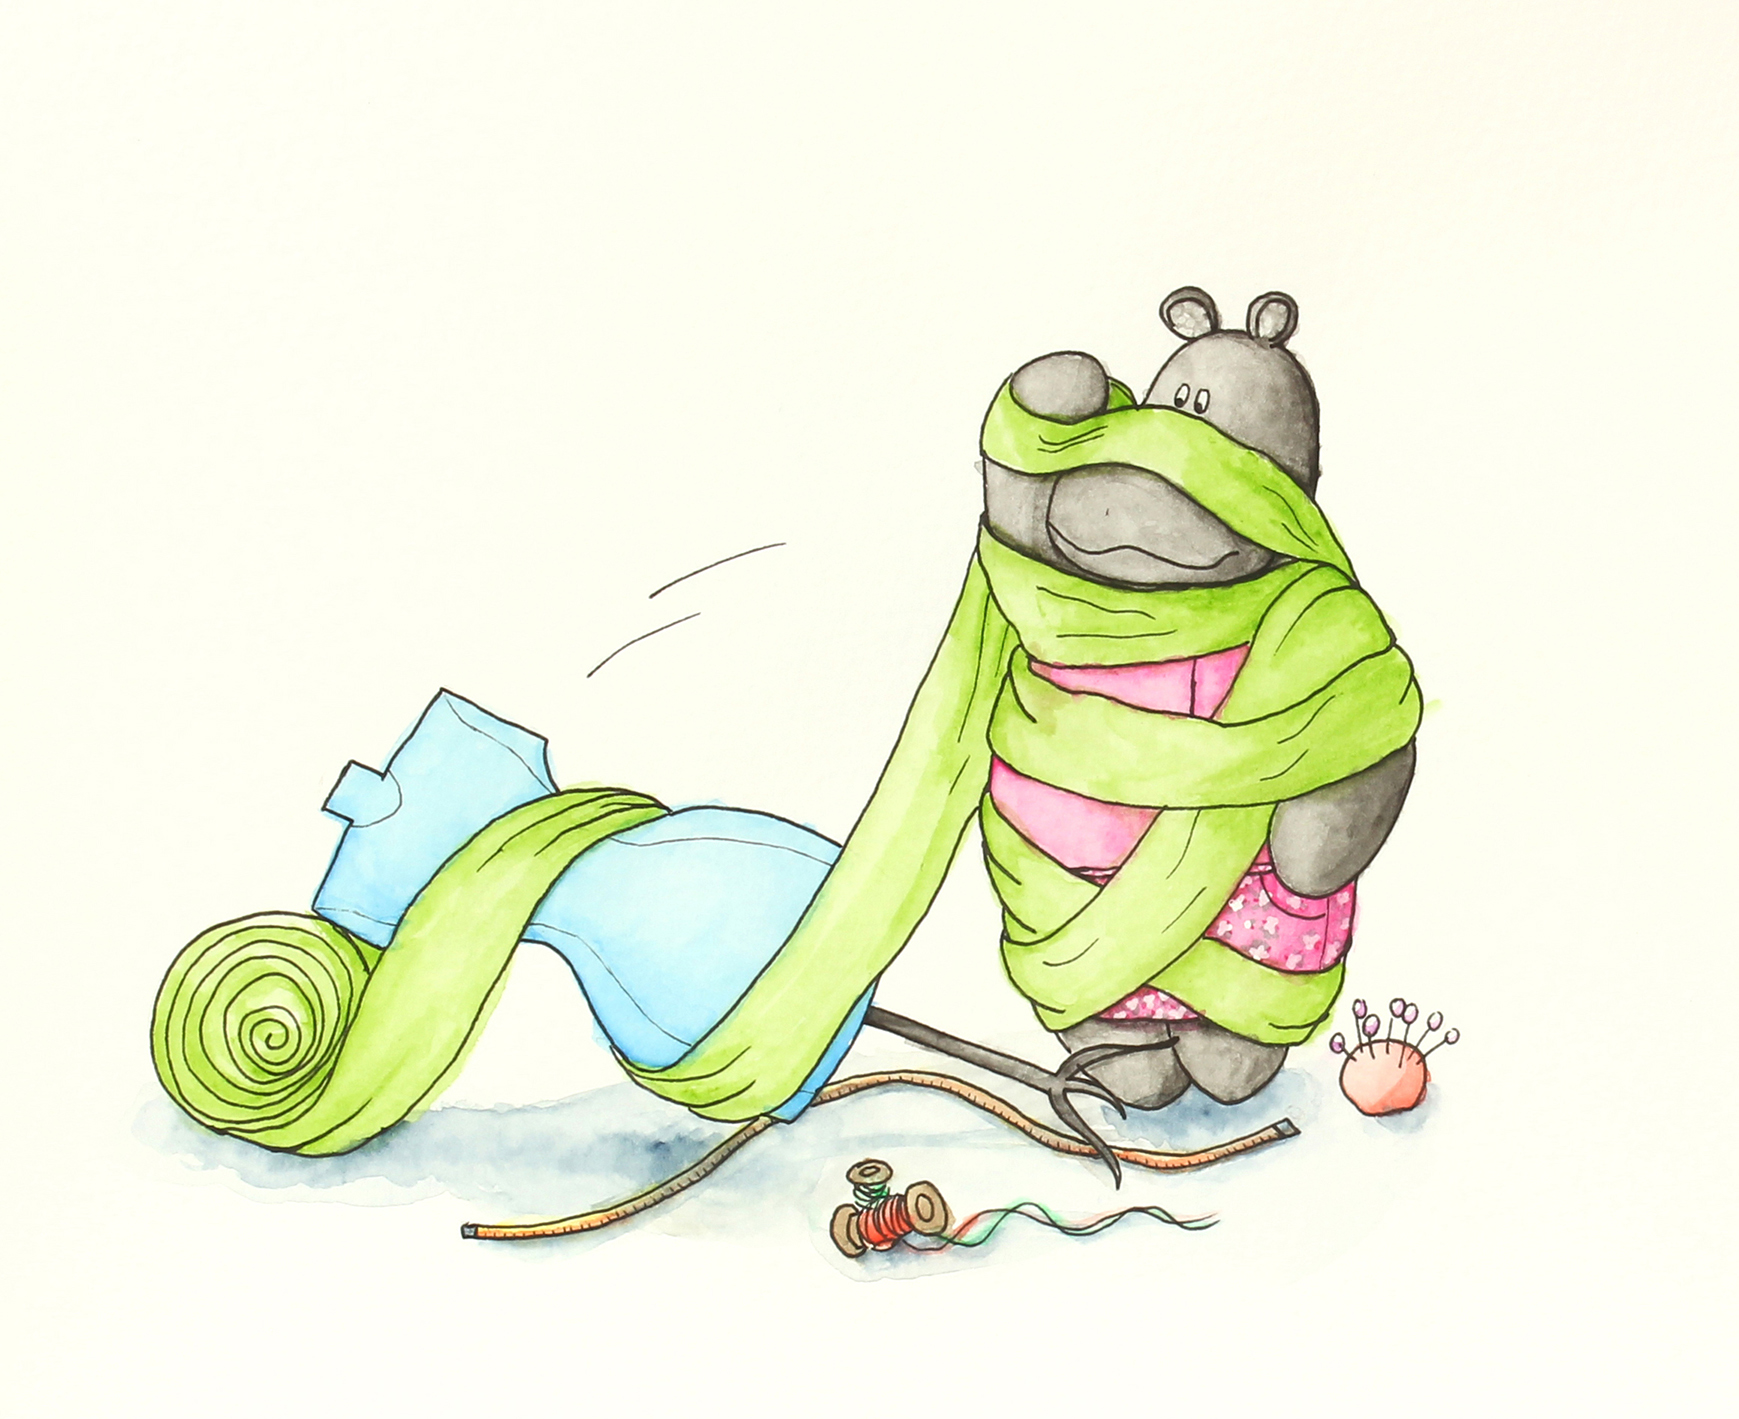 full view watercolor illustration of macy the mippo wrapped in green fabric